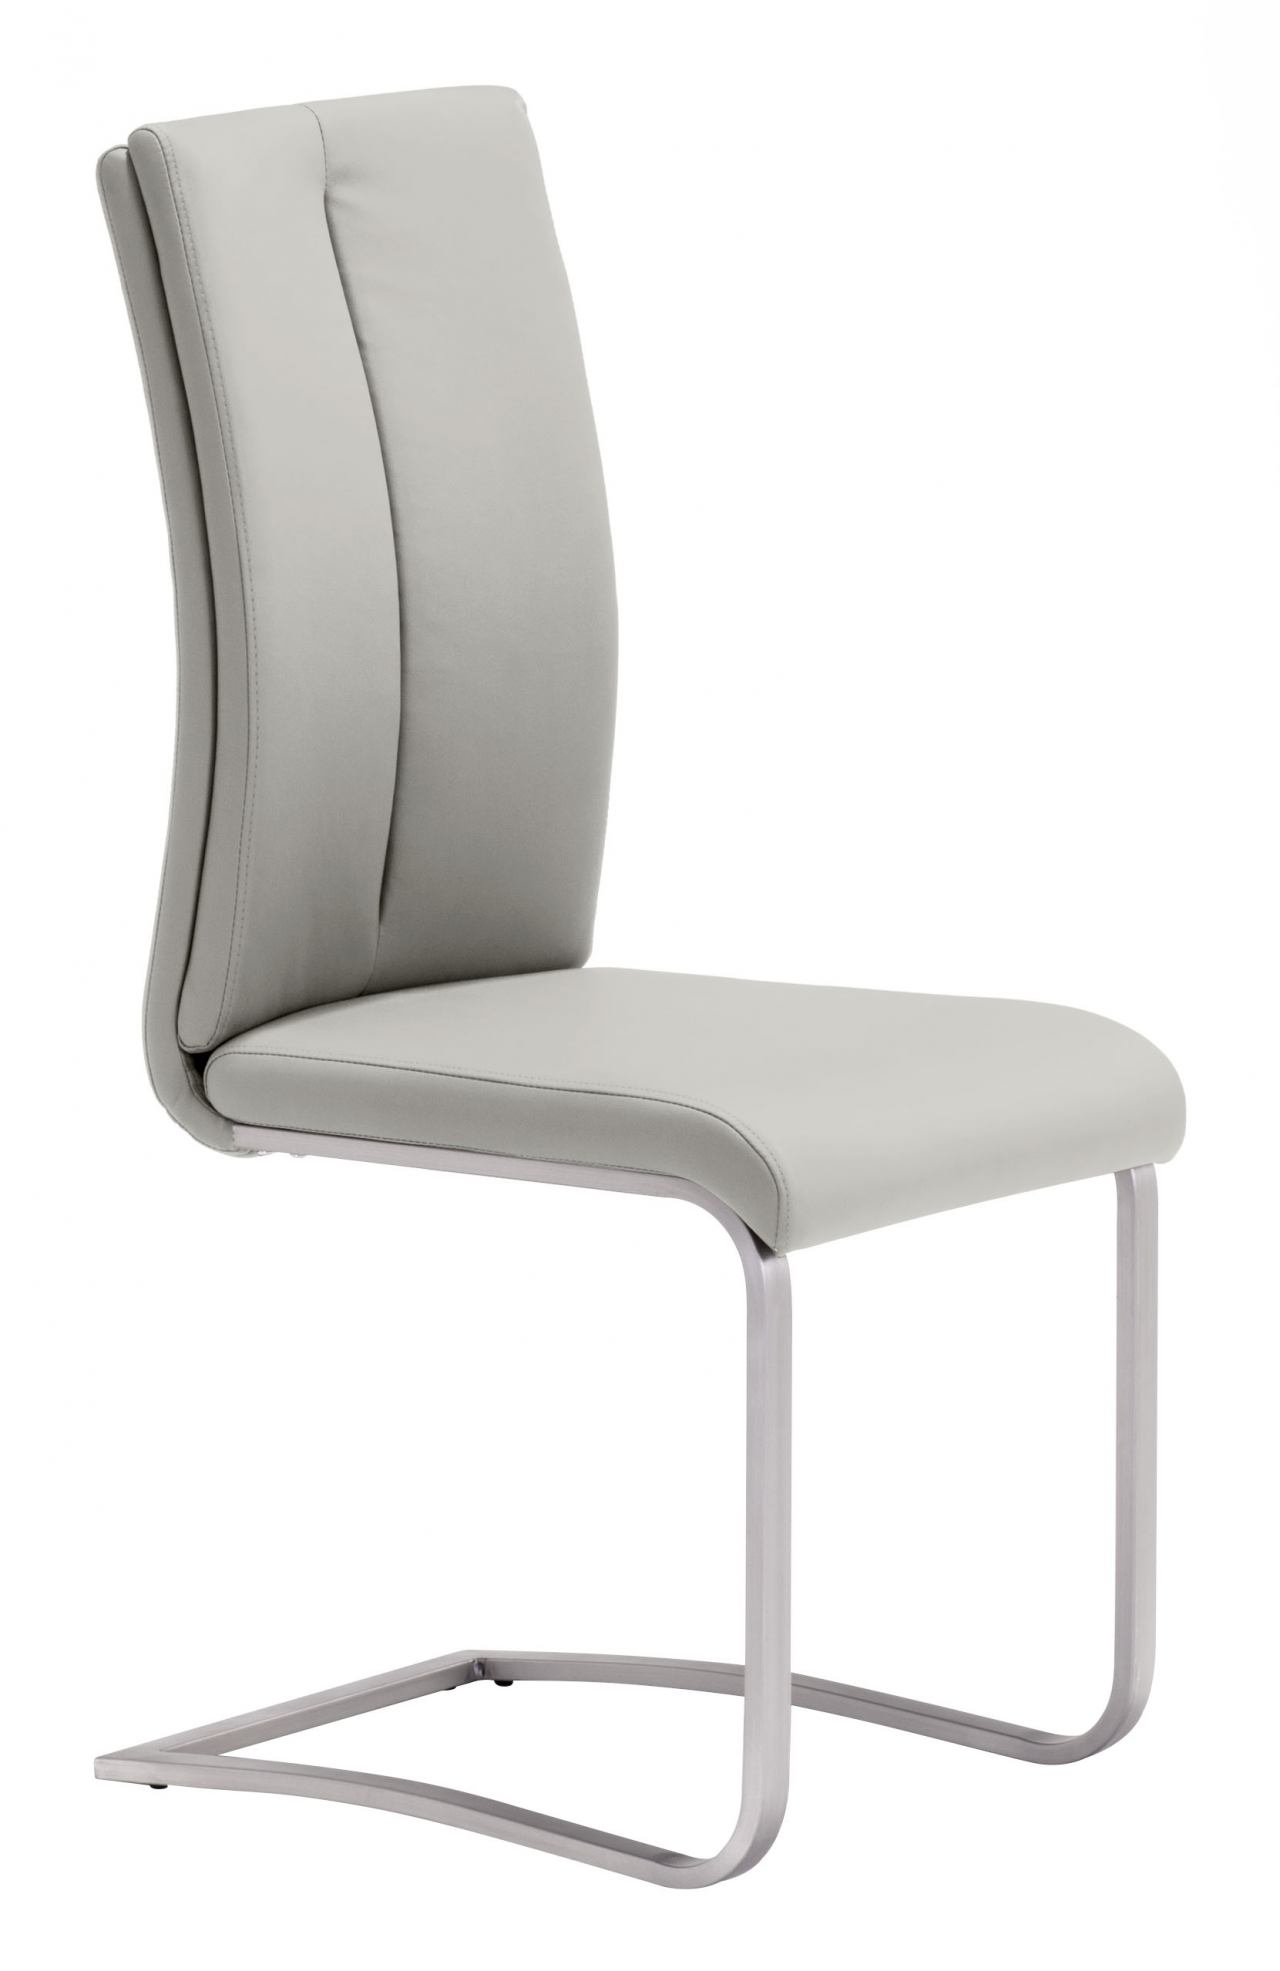 Zuo Modern Rosemont Dining Chair in Taupe 100139 (Set of 2)